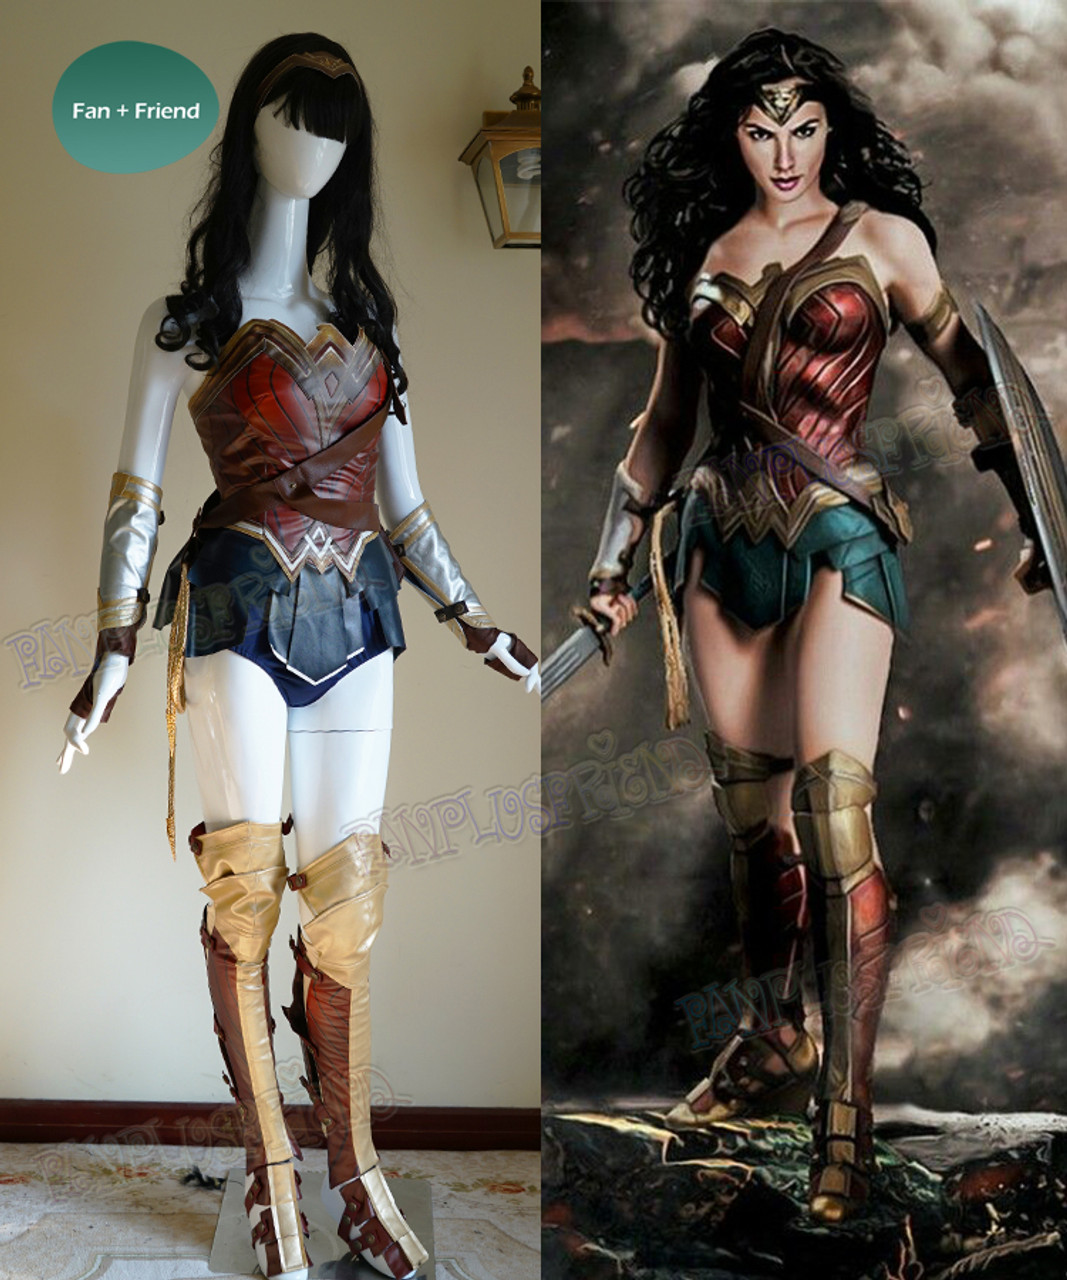 Wonder Woman Cosplay, Adult Women Leather Armor Corset Skirt ... Wonder Woman Cosplay, Adult Women Leather Armor Corset Skirt ... Woman Skirts how to make wonder woman skirt